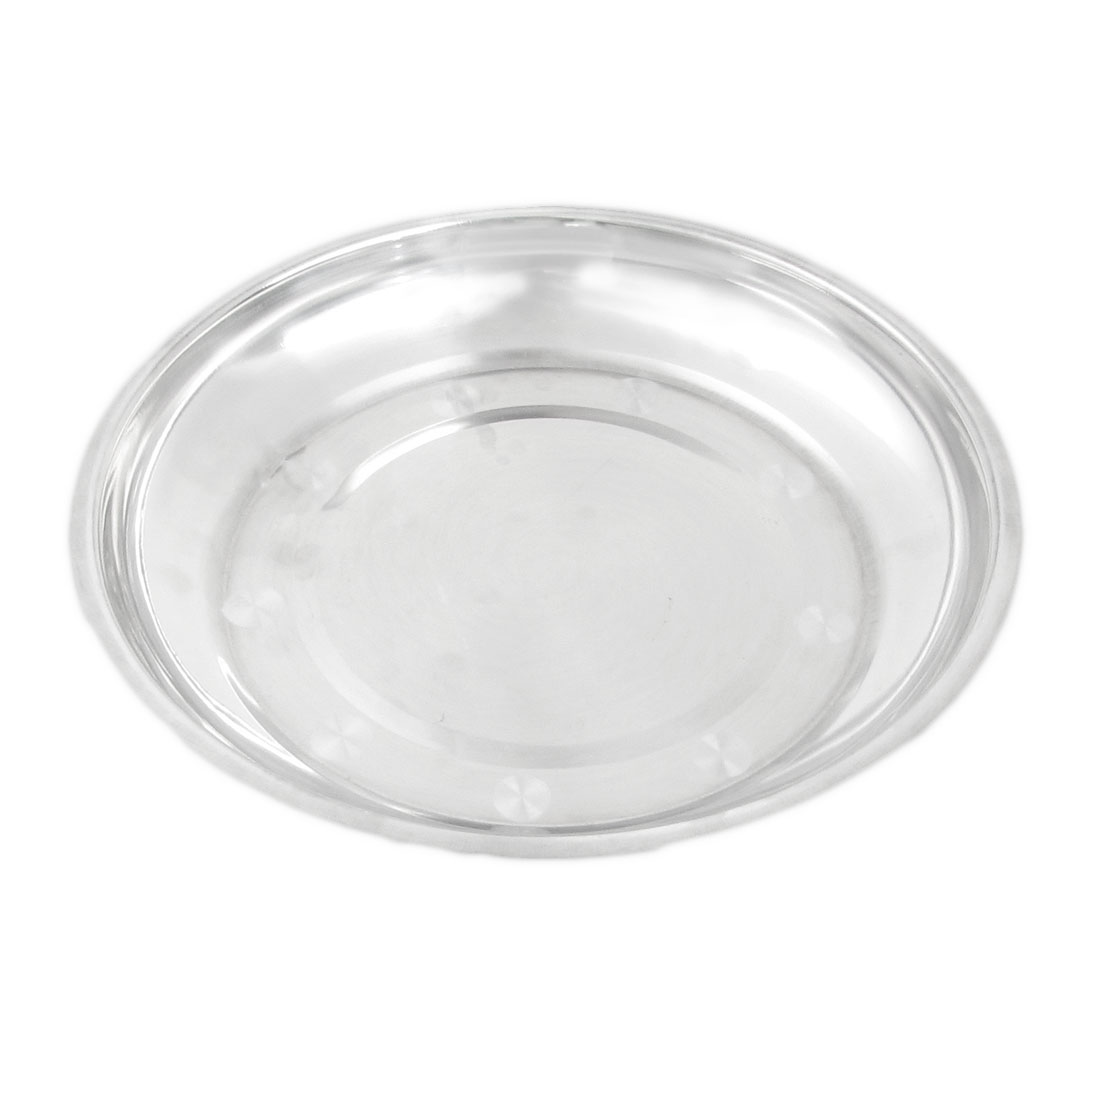 Silver Tone Stainless Steel Round Dishes Serving Tray 23cm Diameter